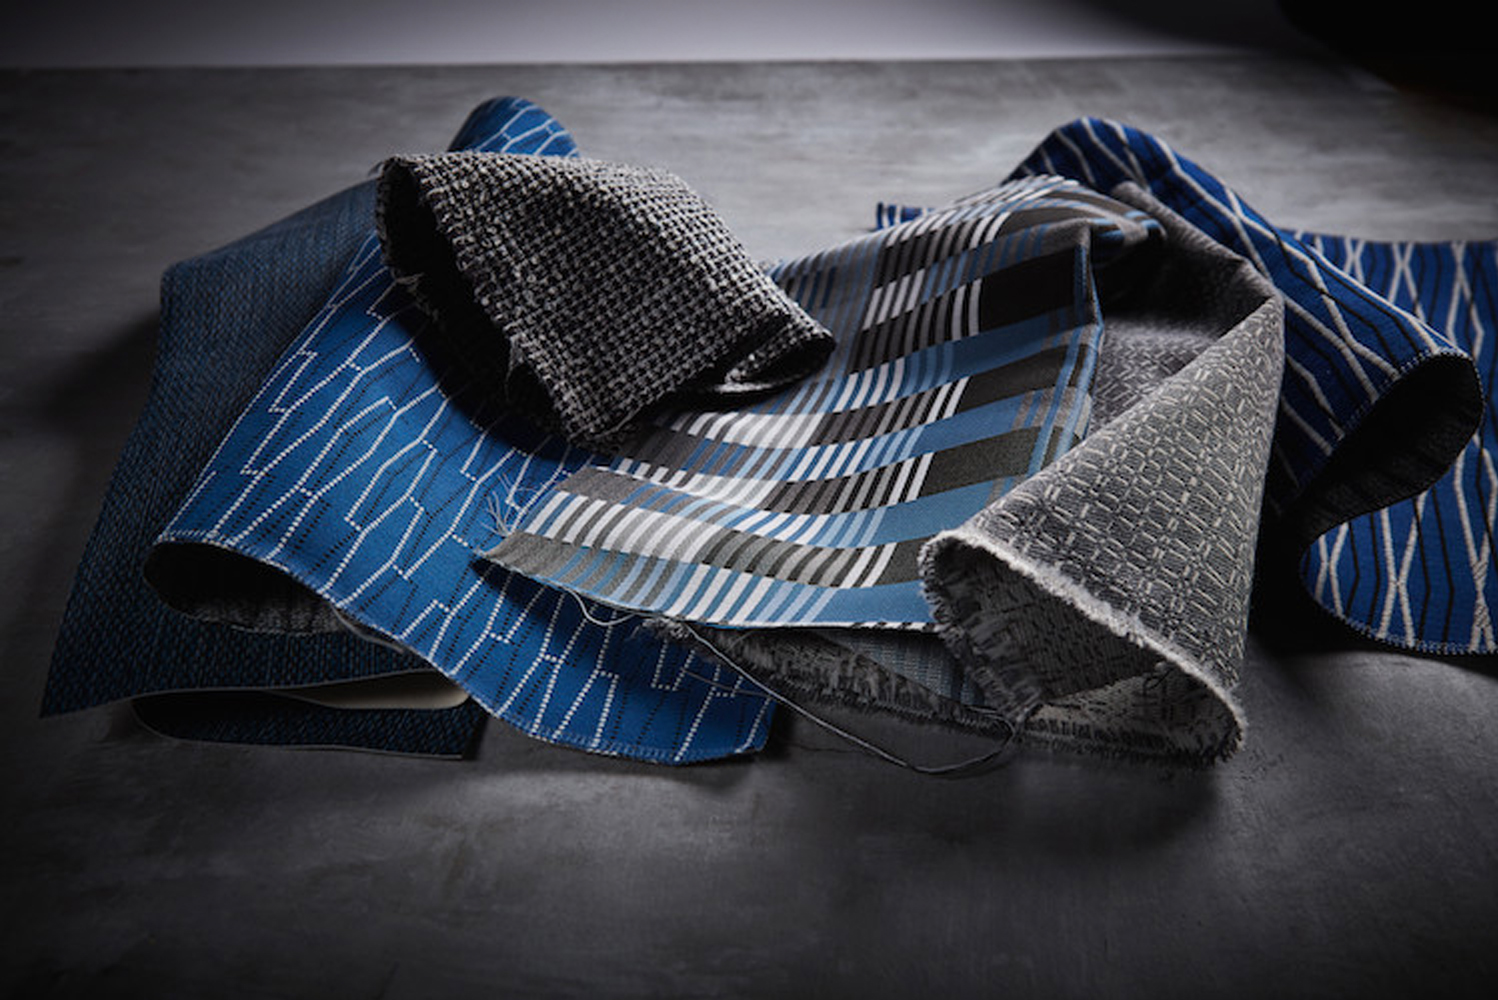 The collection also includes Mix, a densely woven tweed; and Merge, a pattern that hints at algorithmic calculations.